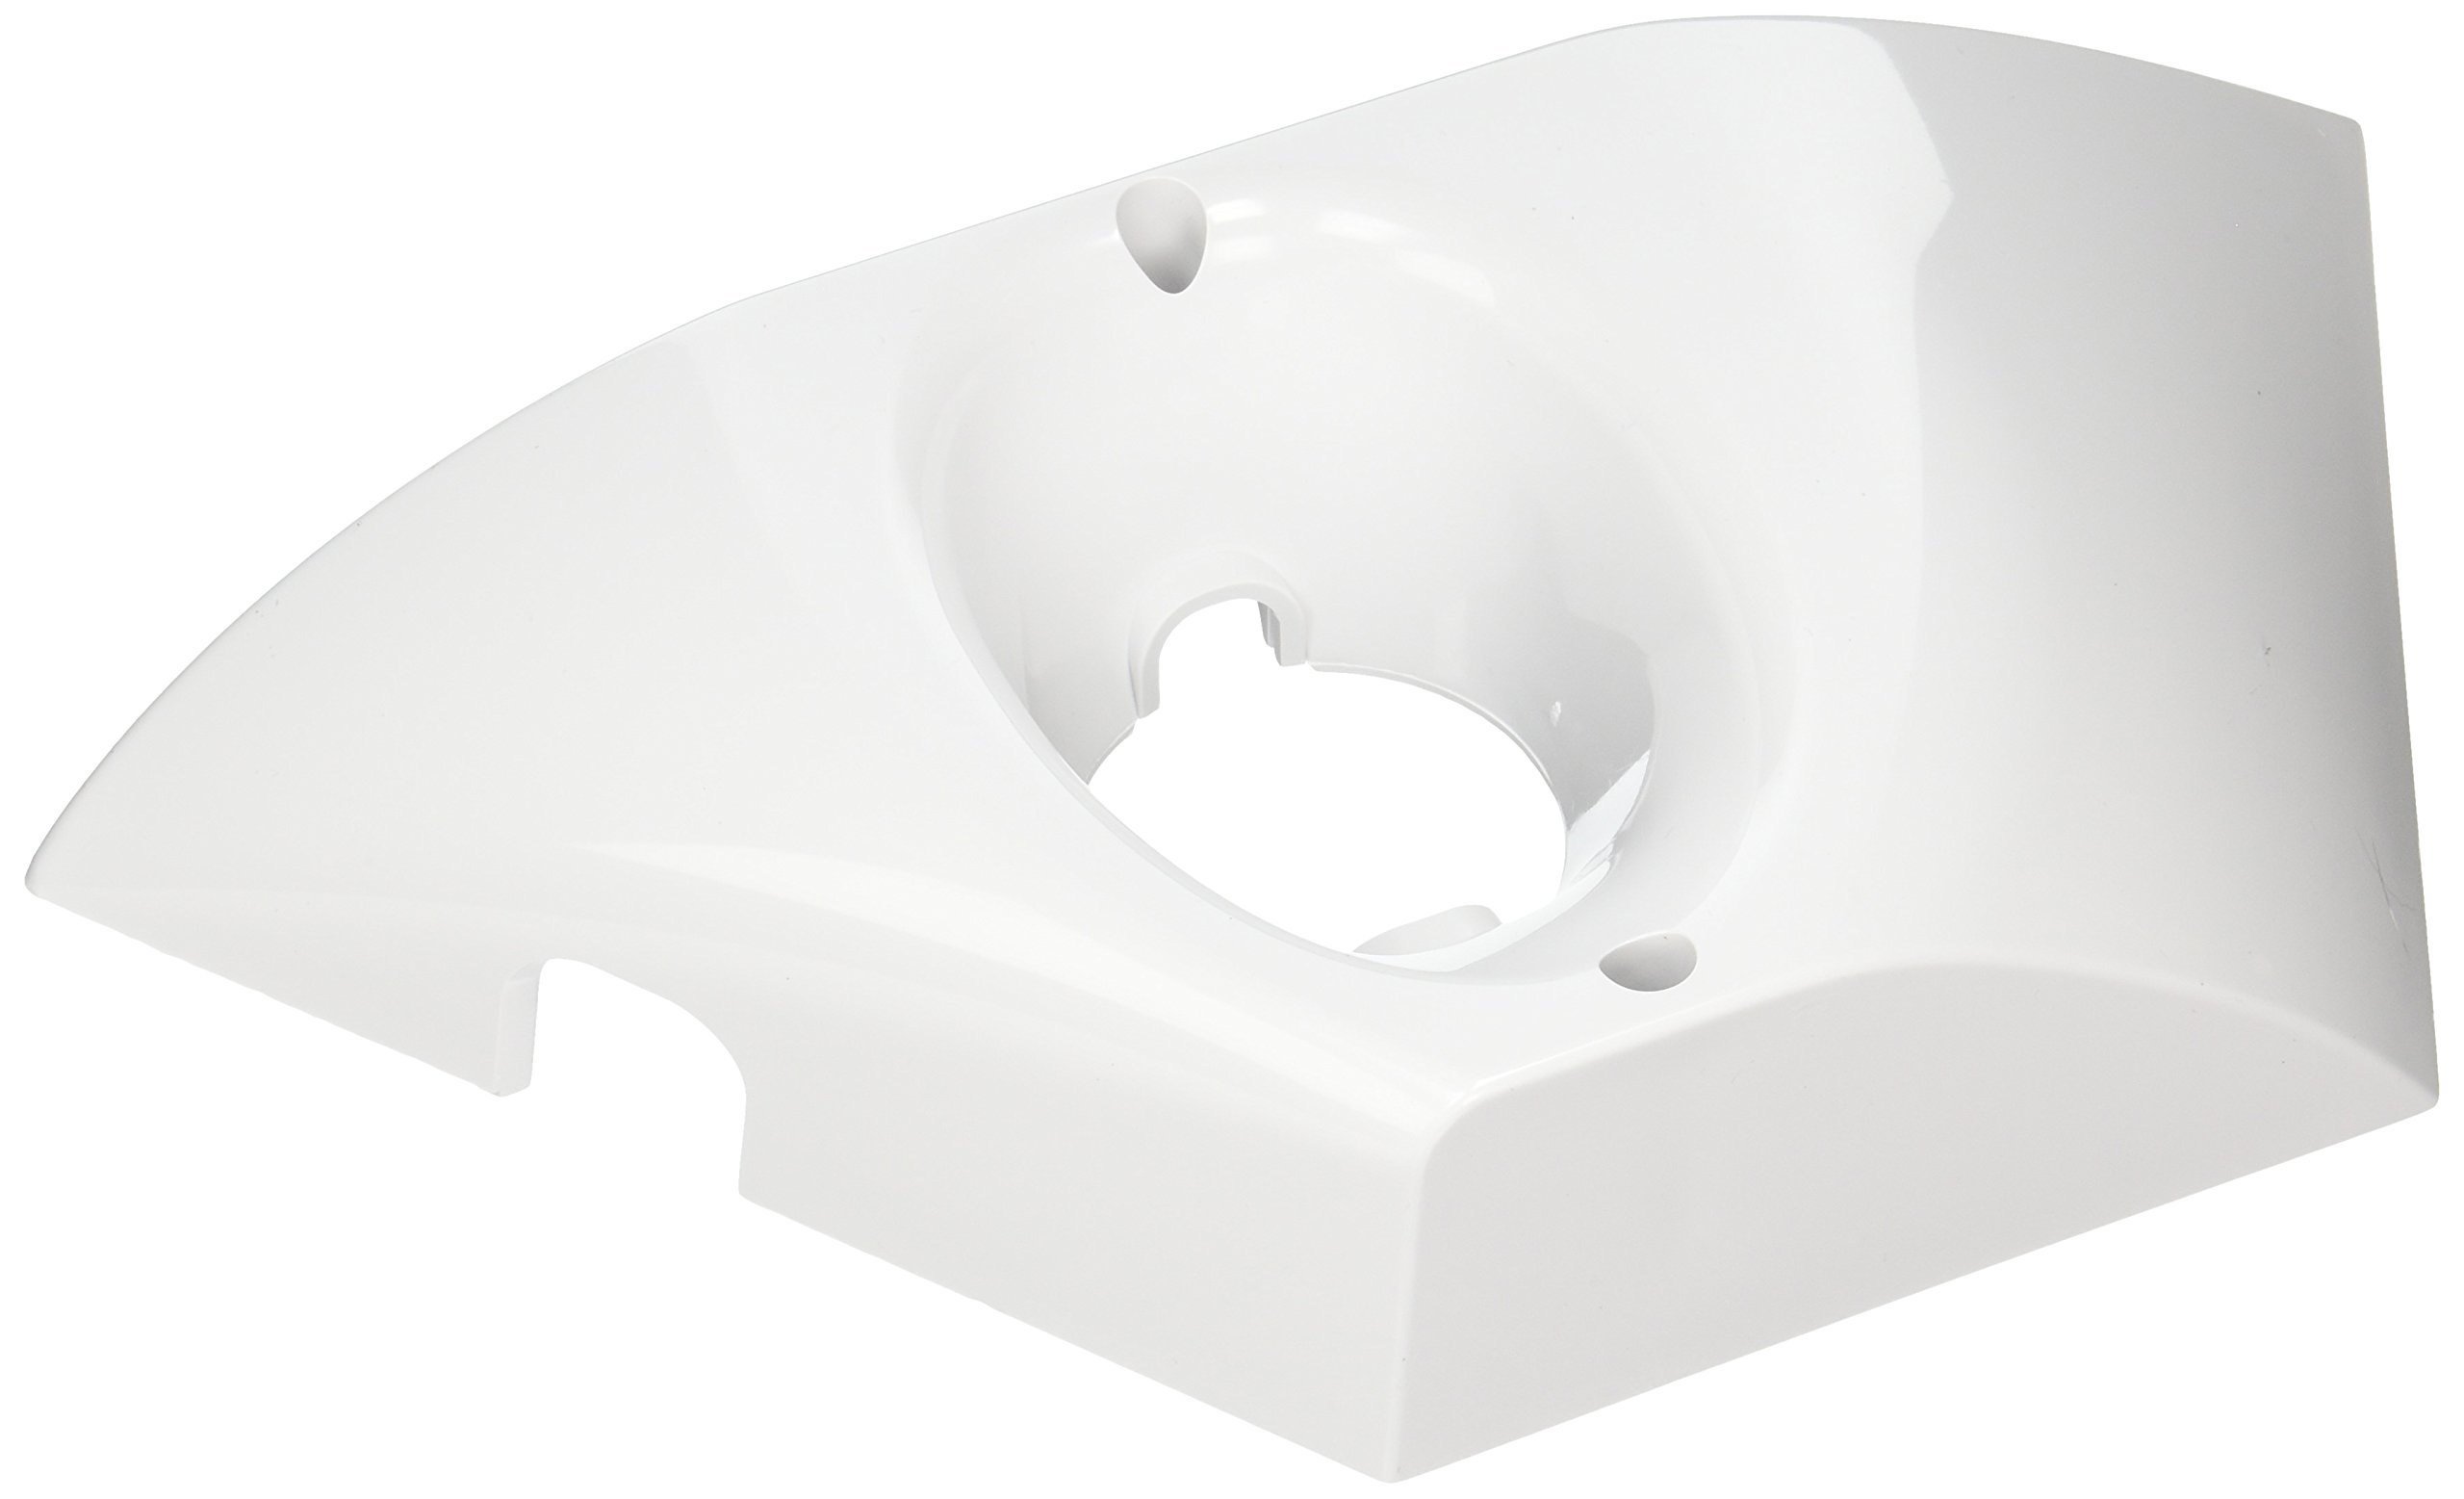 Zodiac K10 White Bottom with Bracket Replacement